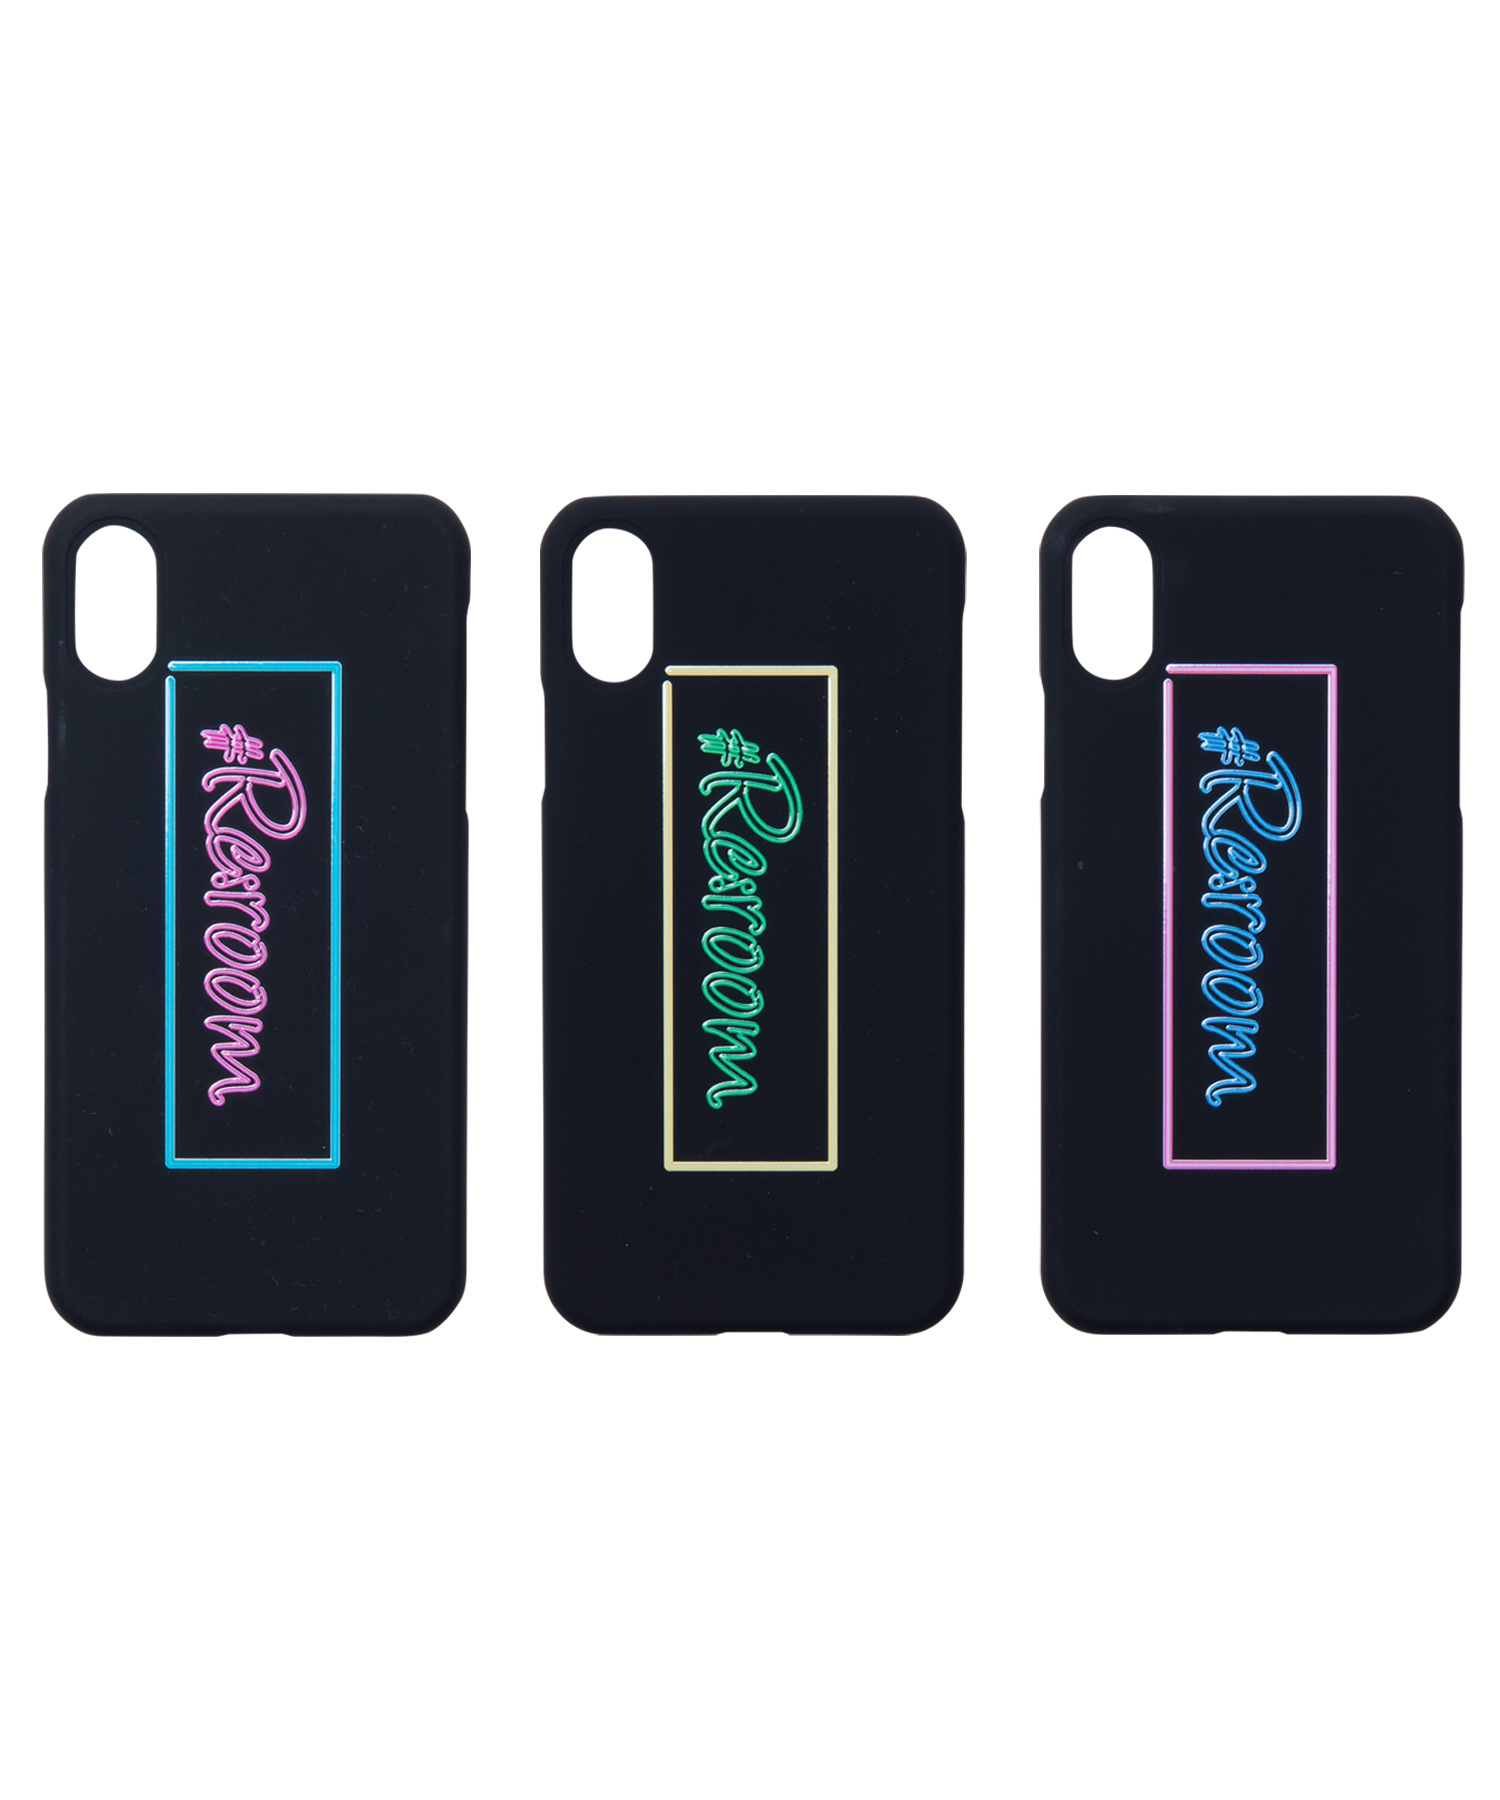 #Re:room NEON BOX LOGO iPhoneX CASE[REG074]